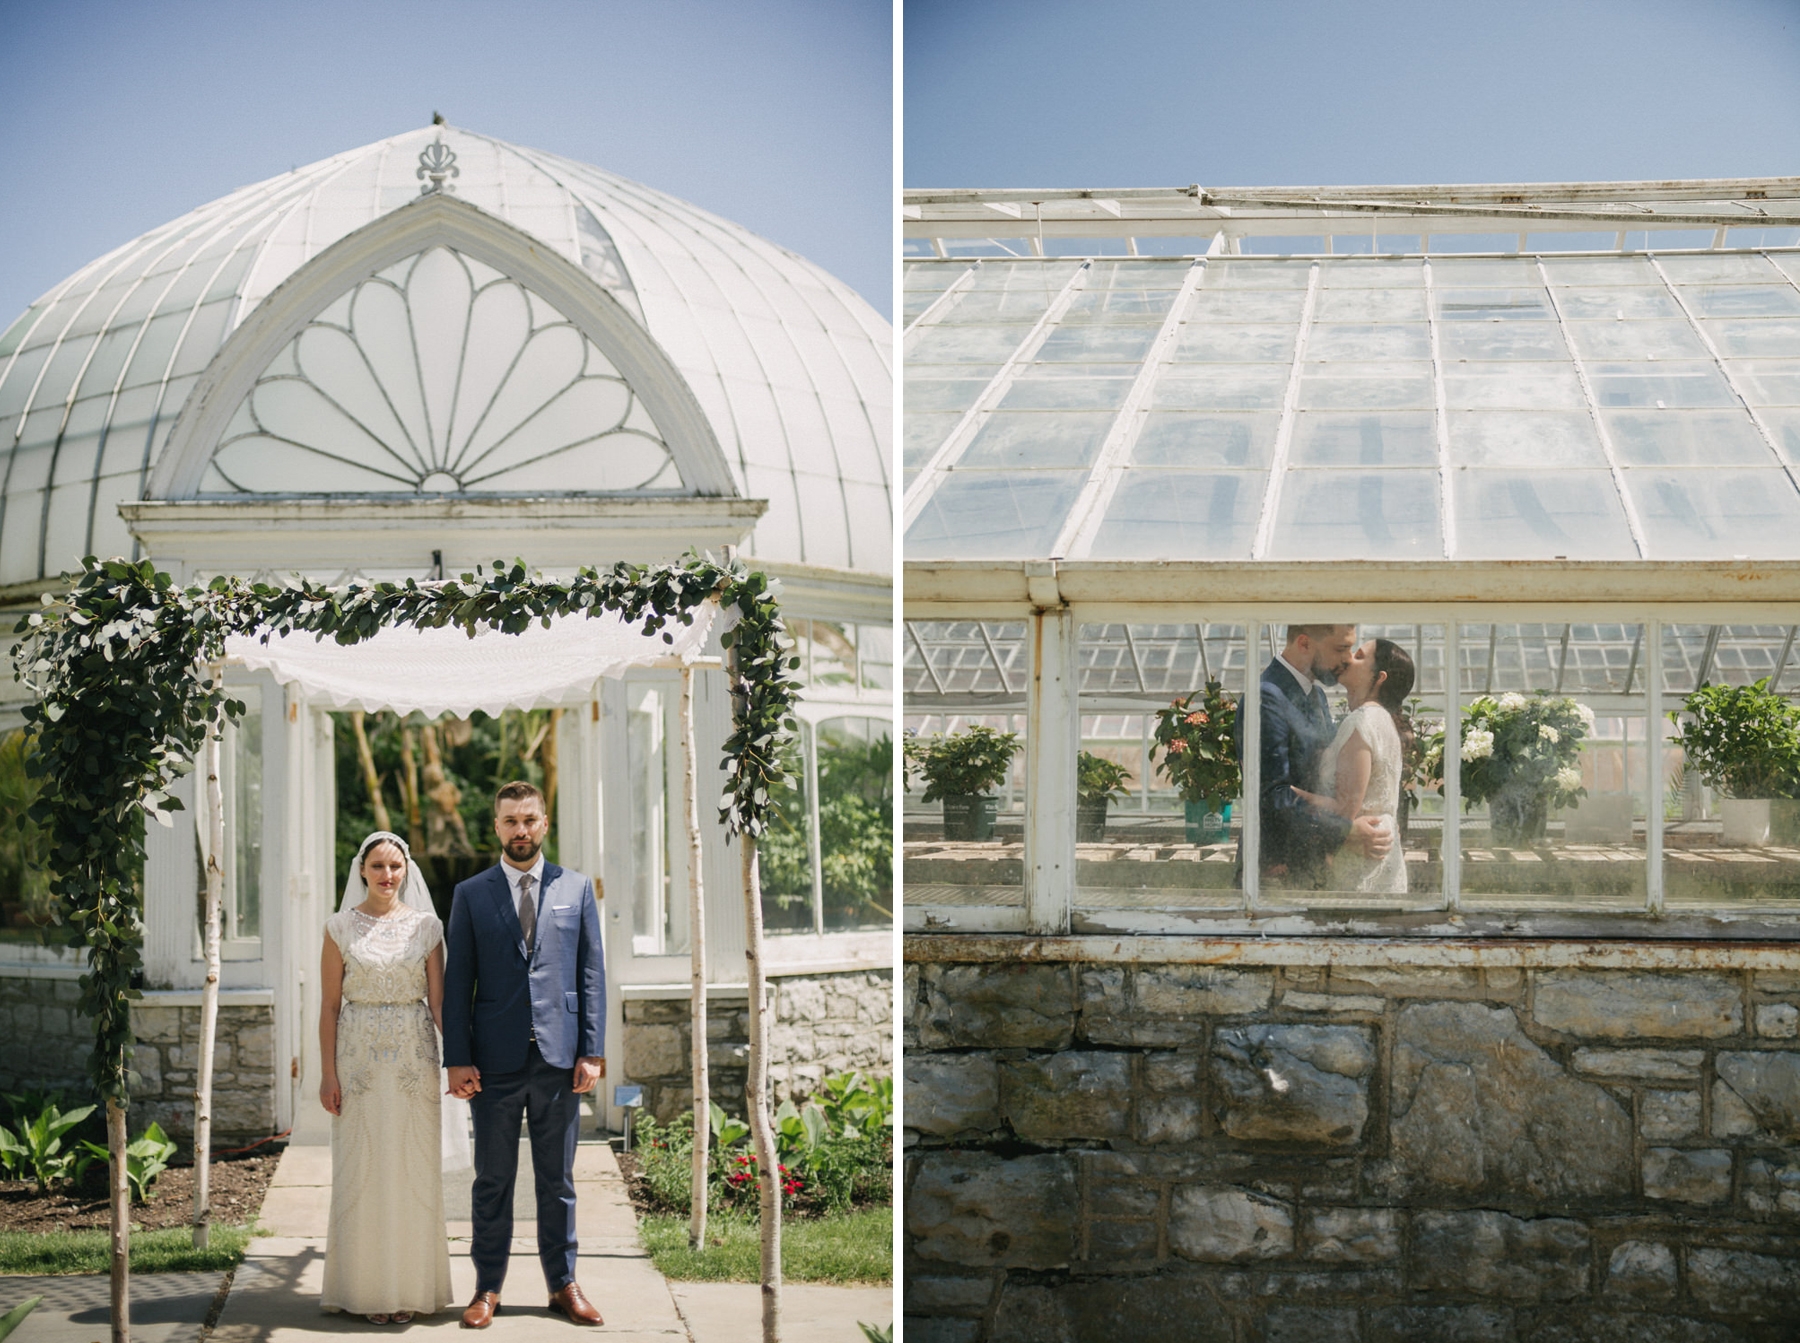 Botanical Greenhouse Wedding at Sonnenberg Gardens // Daring Wanderer